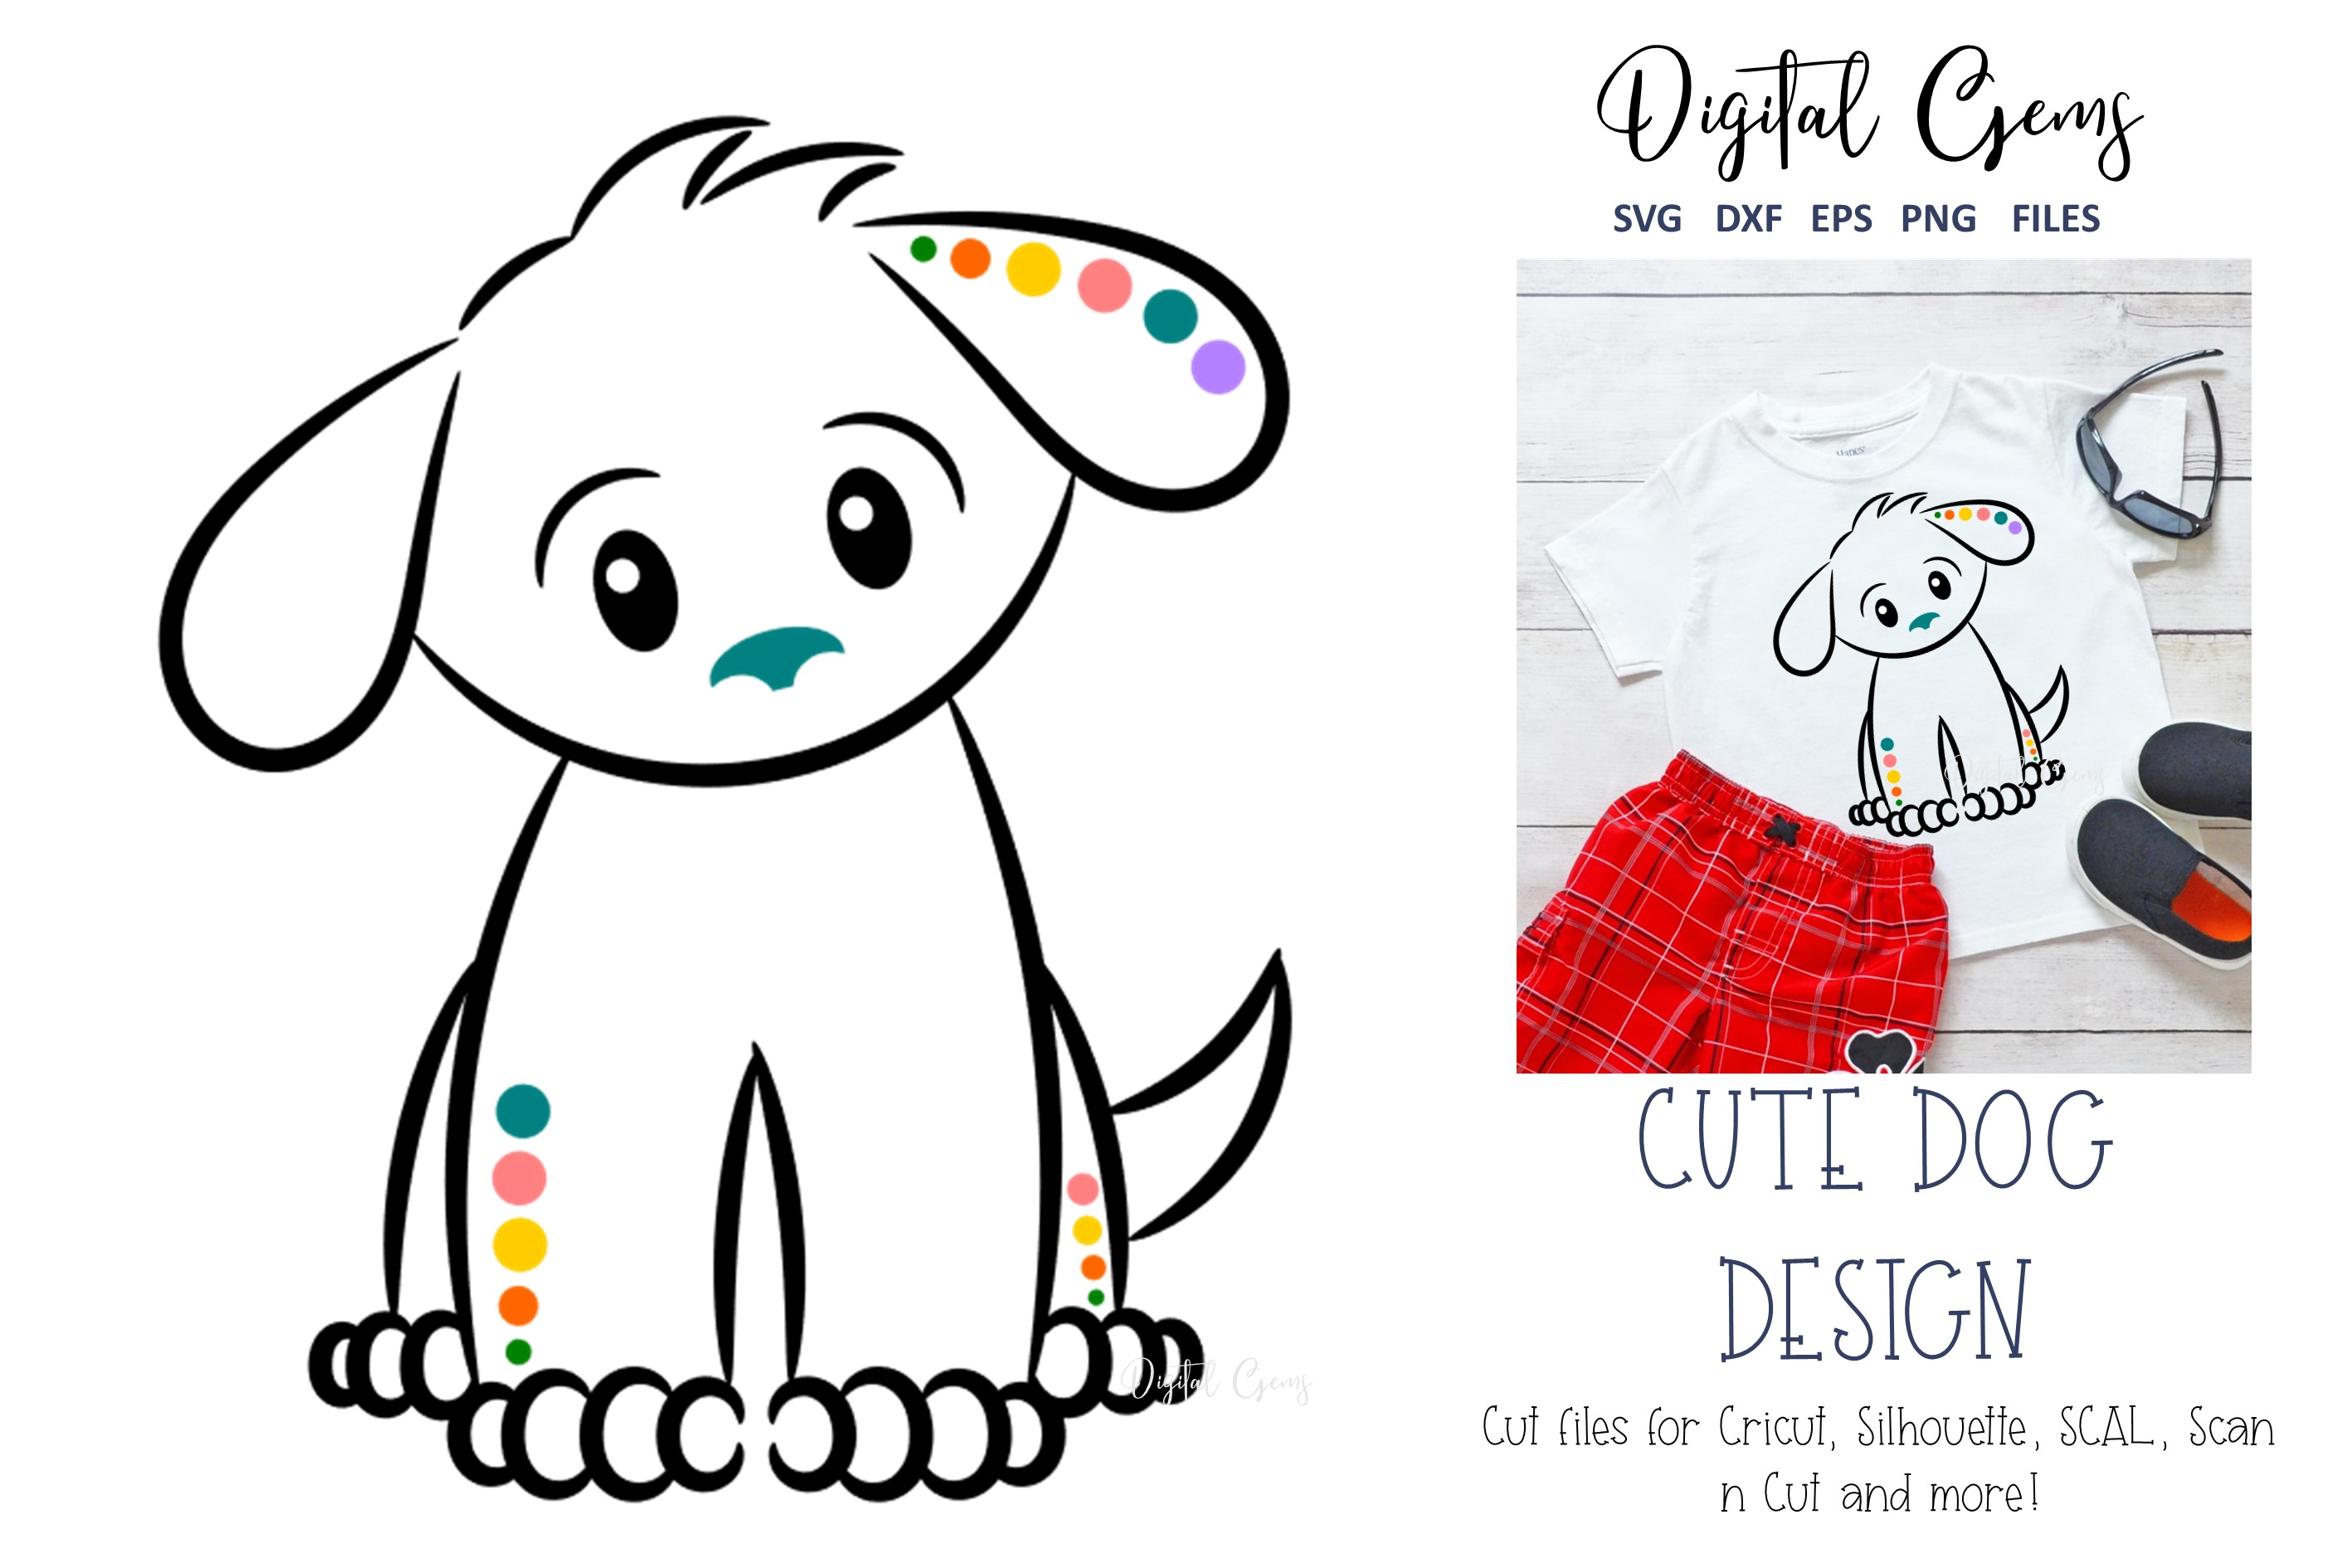 Download Free Cute Dog Graphic By Digital Gems Creative Fabrica for Cricut Explore, Silhouette and other cutting machines.